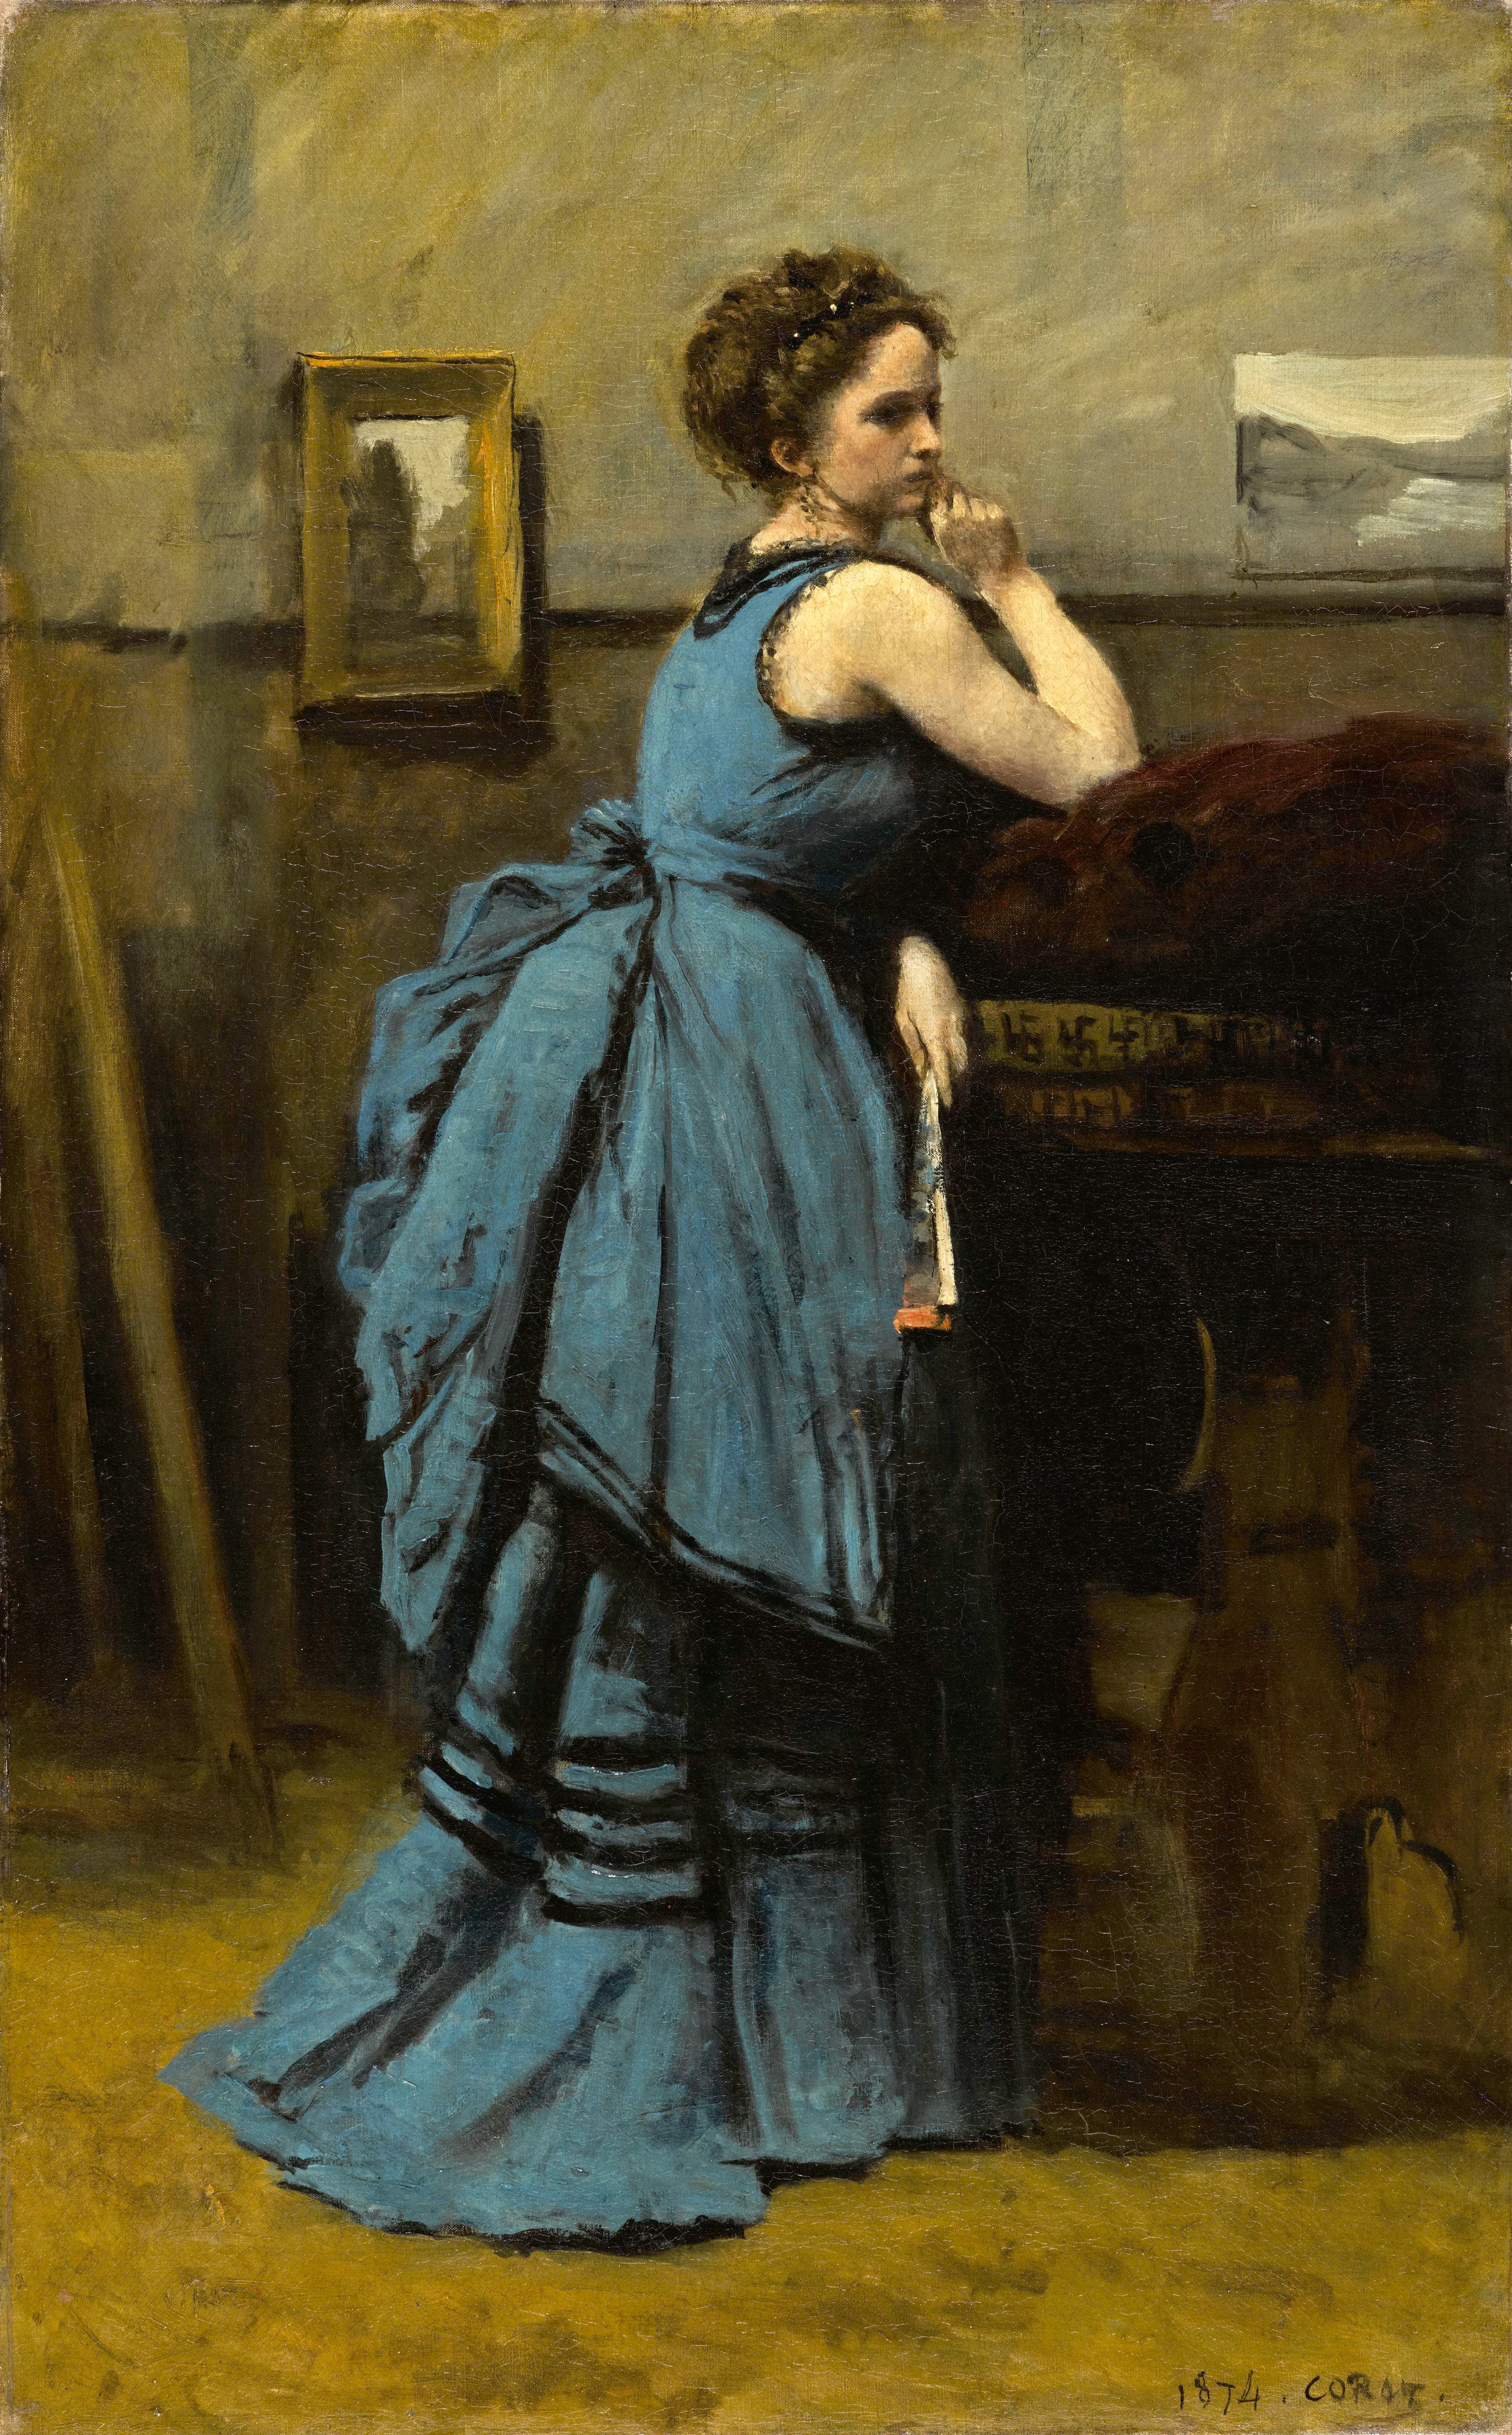 https://upload.wikimedia.org/wikipedia/commons/5/59/Jean-Baptiste-Camille_Corot_-_Lady_in_Blue_-_WGA5304.jpg